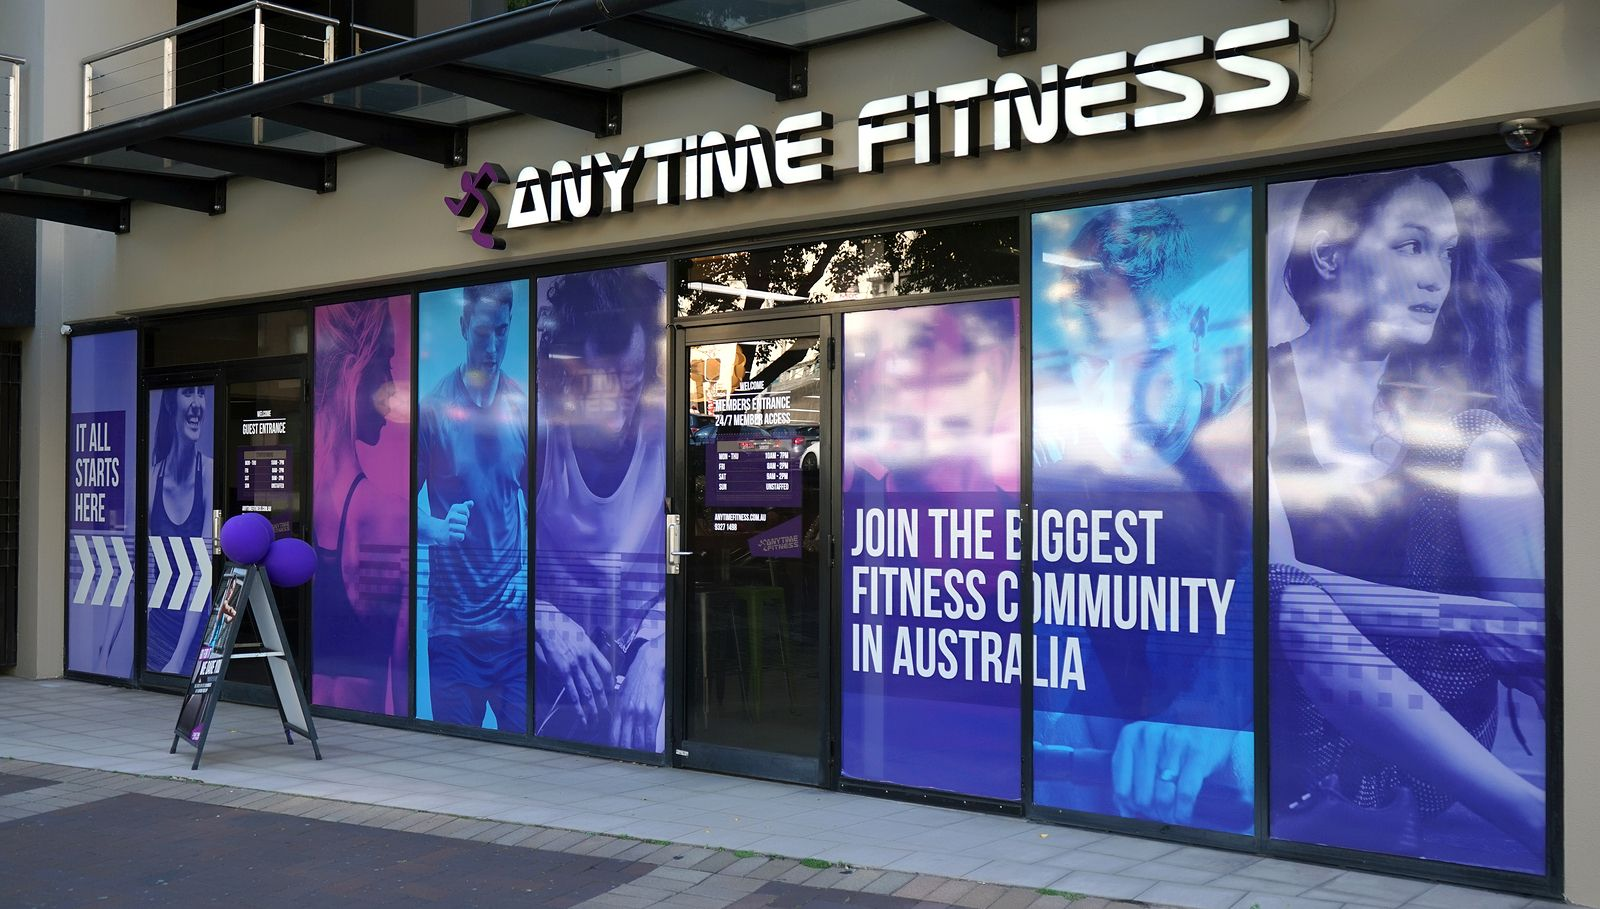 Anytime Fitness named Top Global franchise | Inside Franchise Business